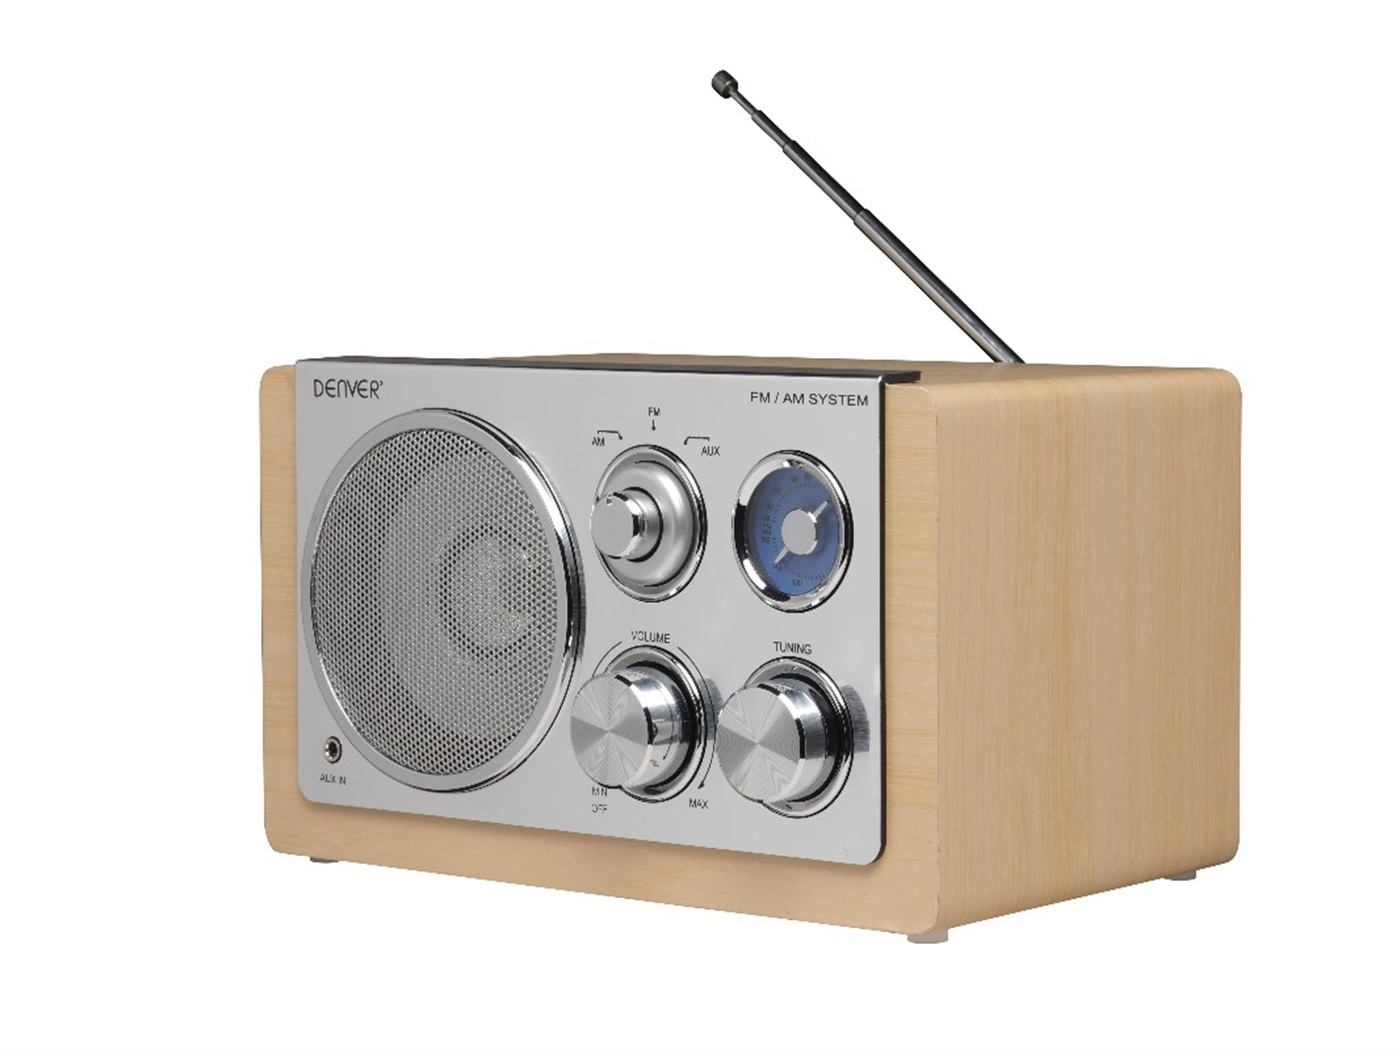 DENVER AM/FM RADIO TR-64 WOOD